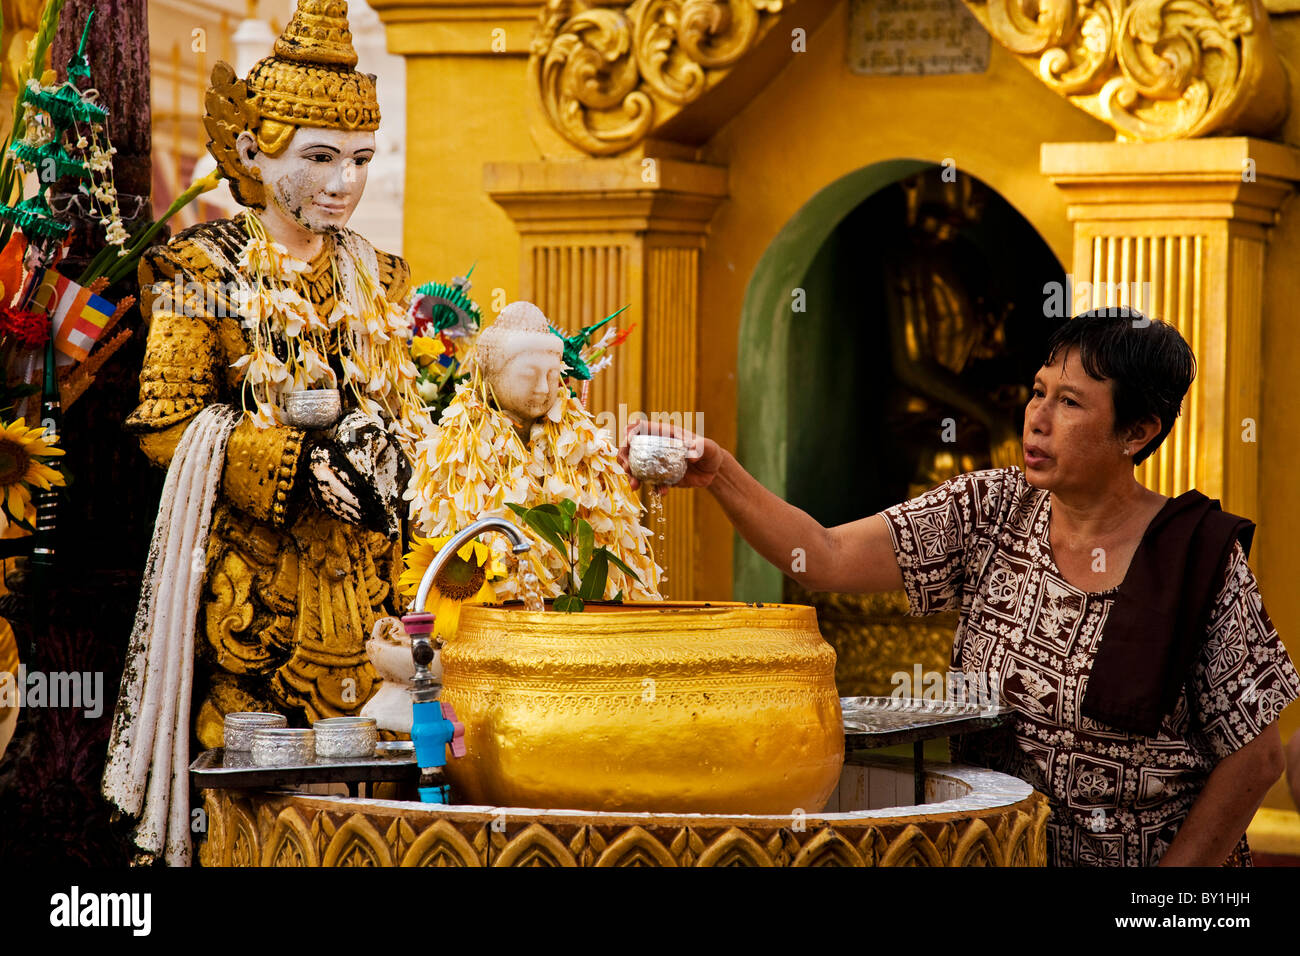 Myanmar, Burma, Yangon, Rangoon. A devout worshipper anoints a statue of Buddha, garlanded with lotus flowers, Shwedagon - Stock Image